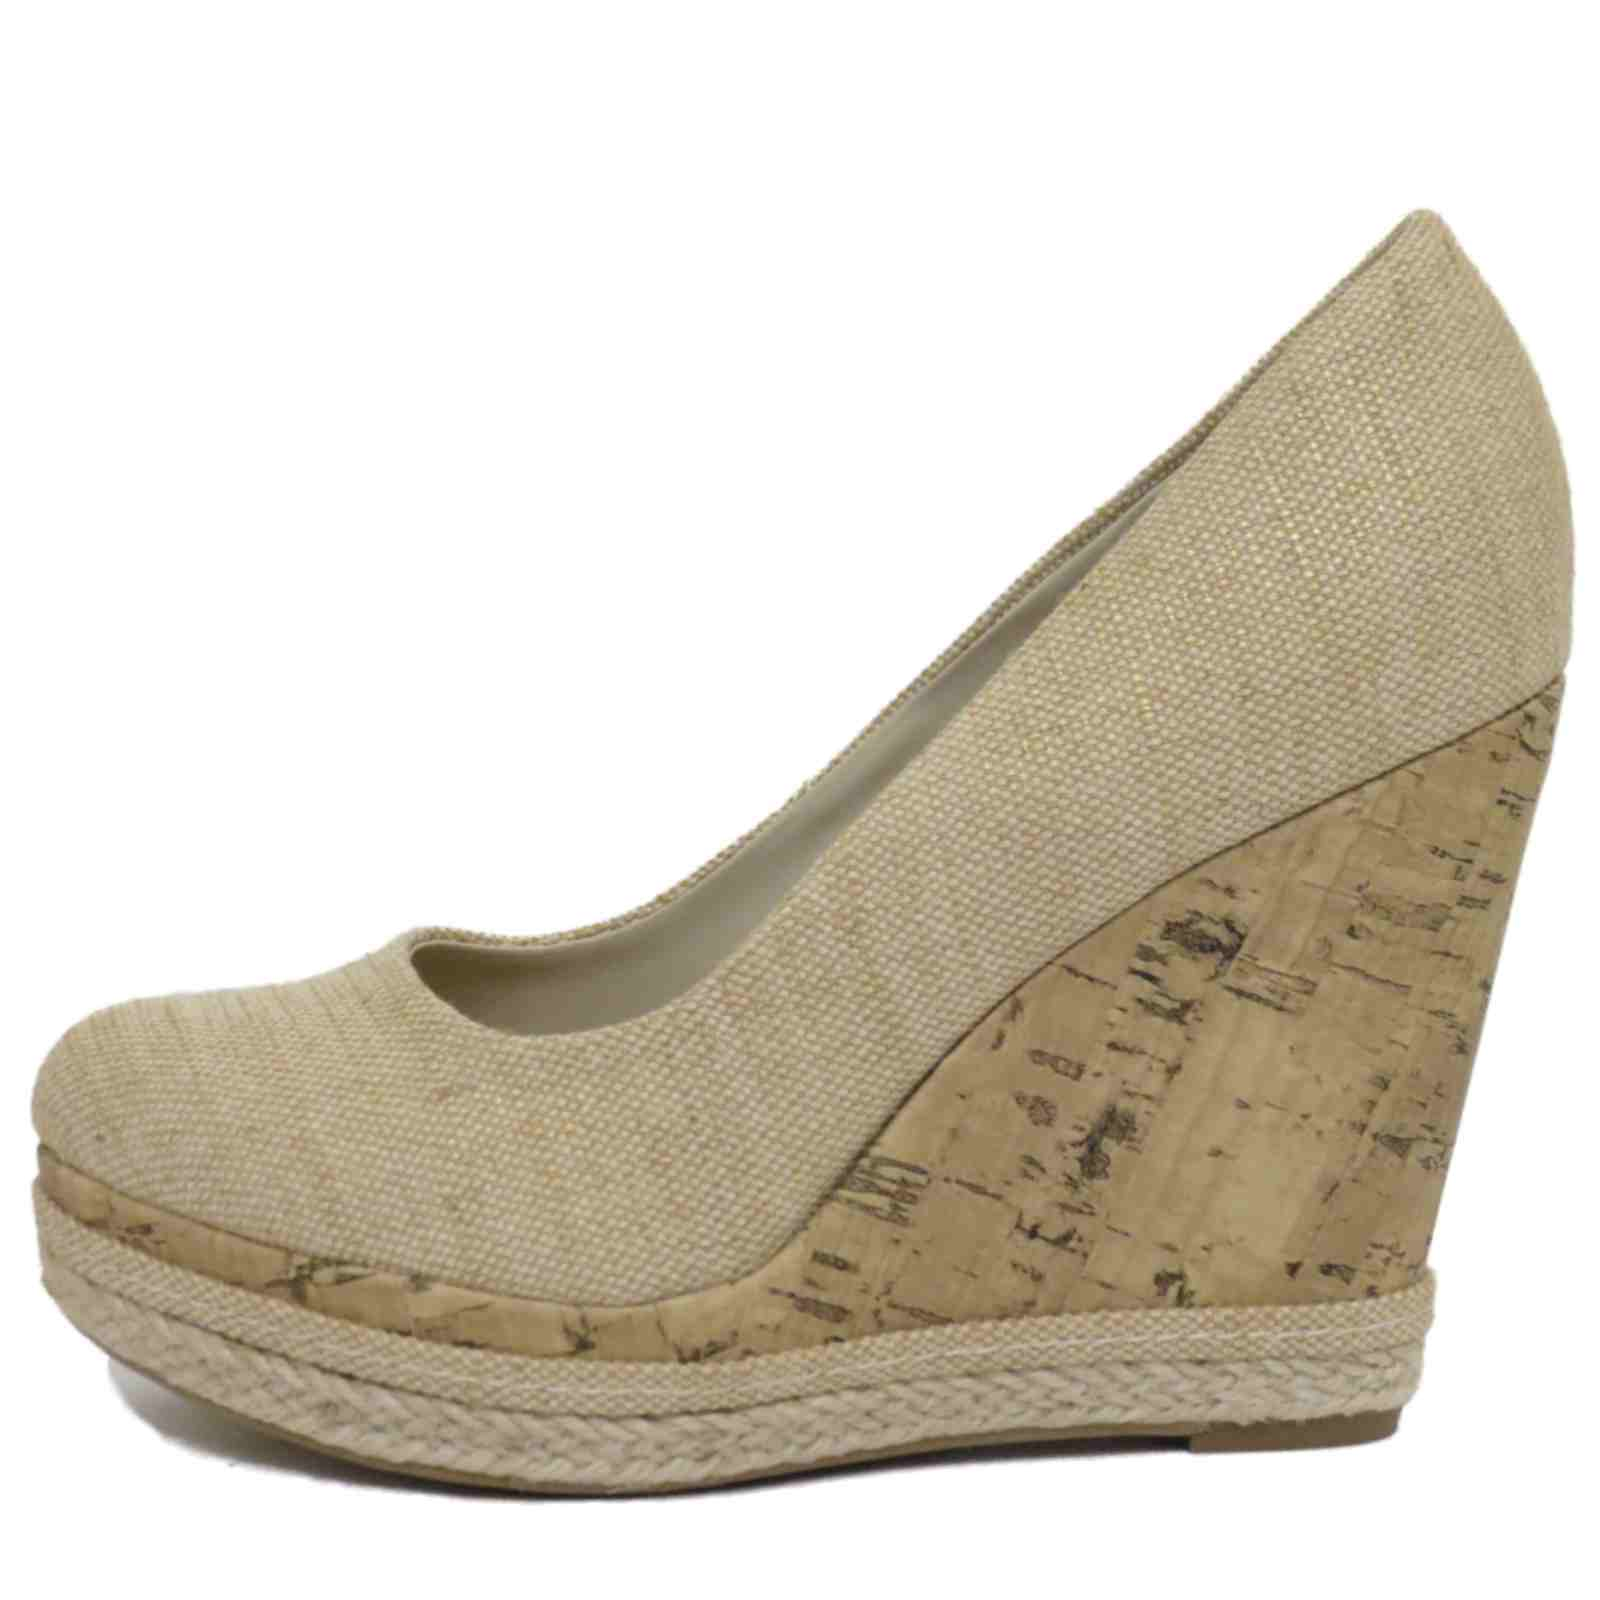 Shop for womens canvas wedge shoes online at Target. Free shipping on purchases over $35 and save 5% every day with your Target REDcard.